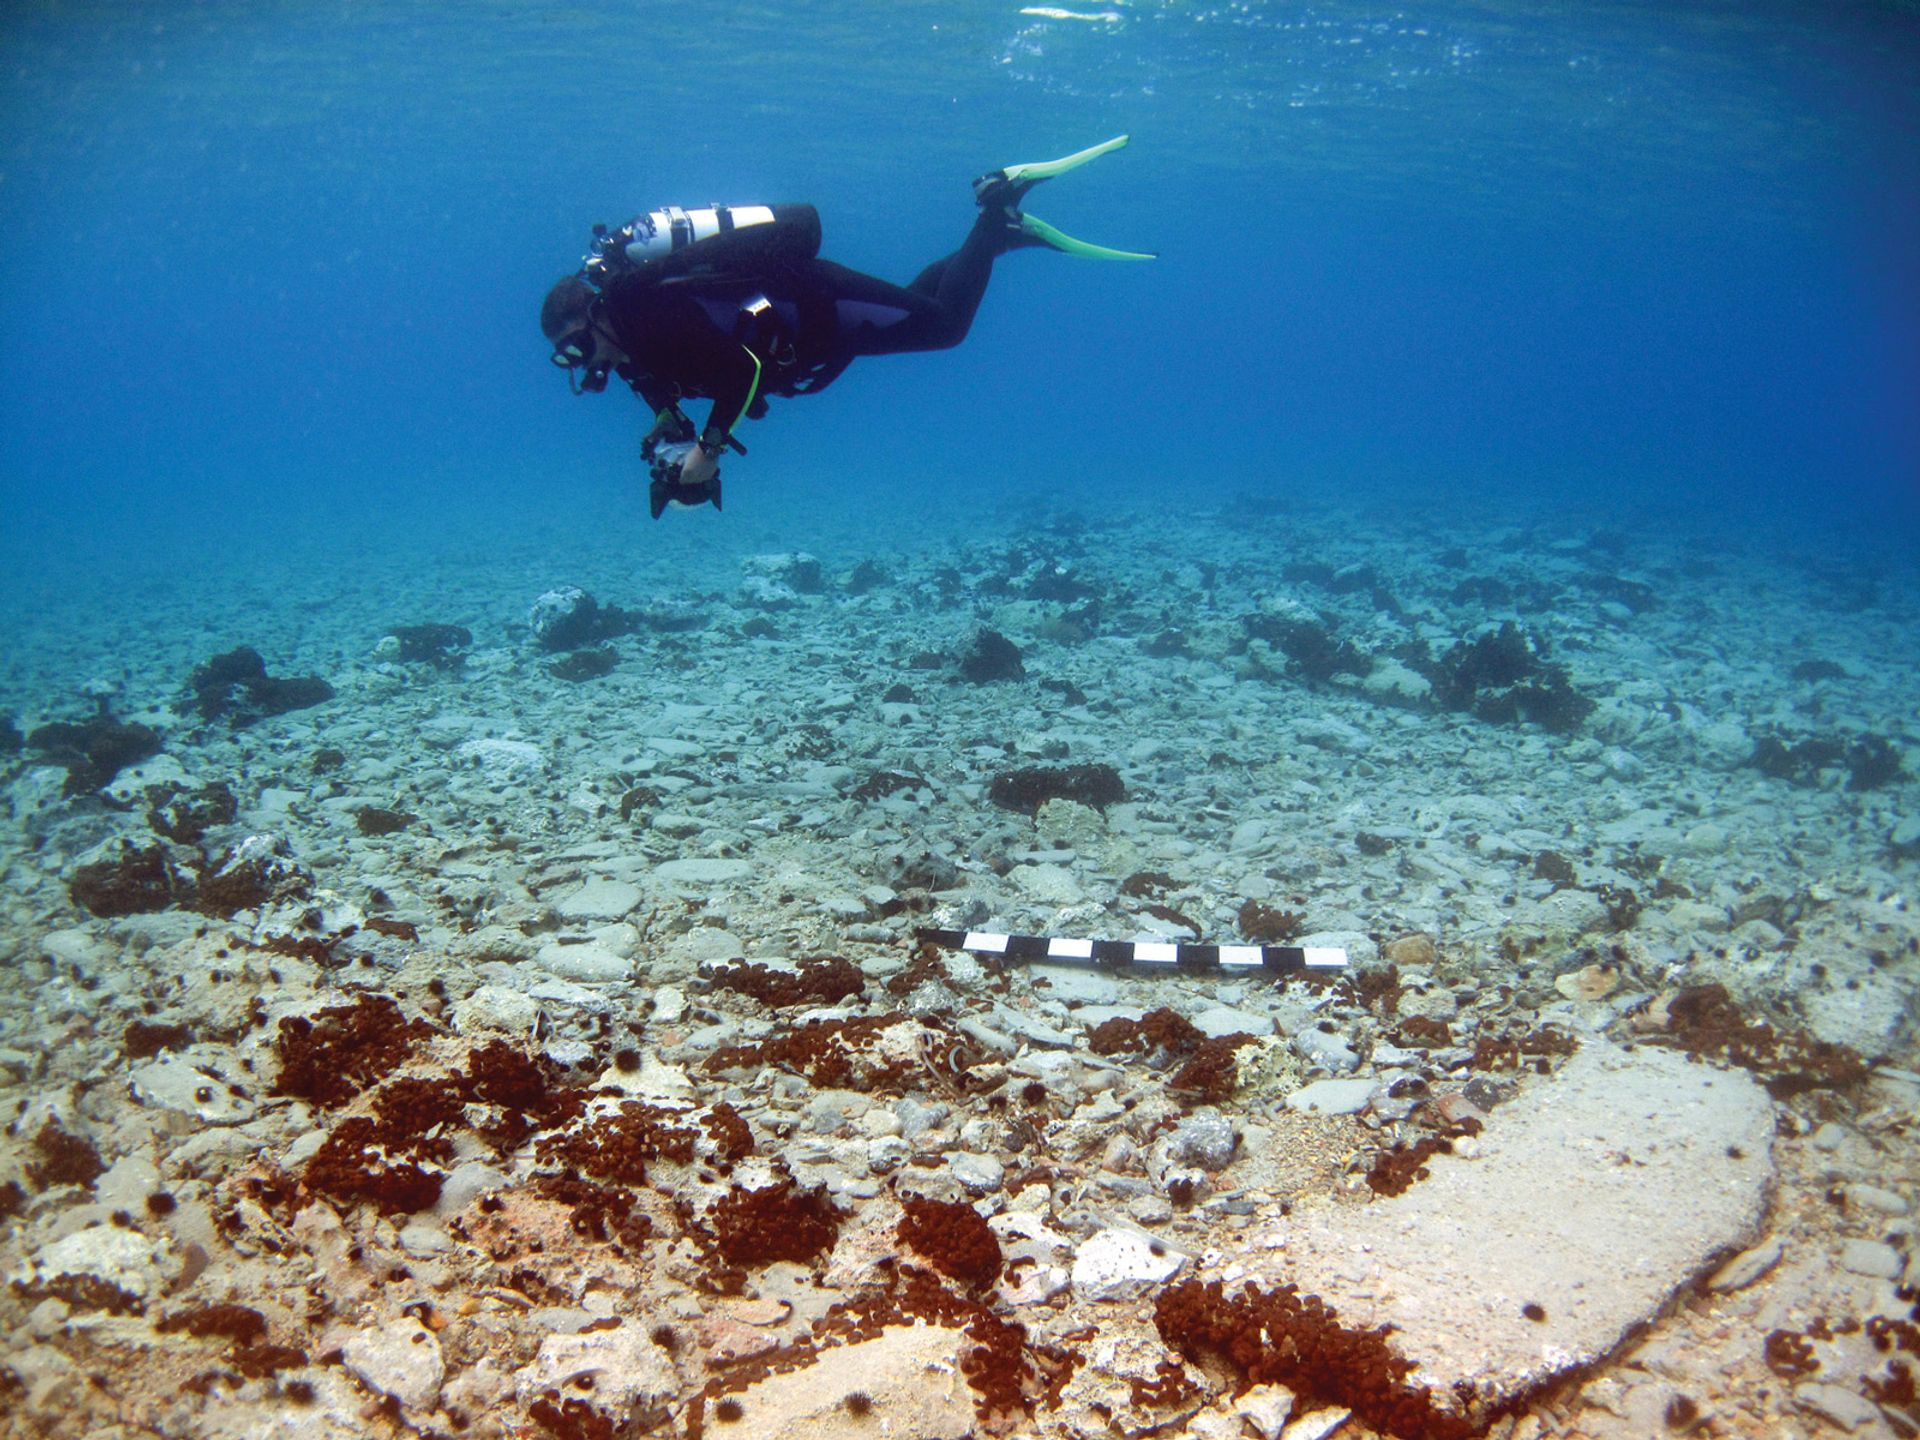 The prehistoric settlement of Pavlopetri, one of the world's oldest submerged cities, will have underwater information panels and buoys on the sea surface to guide divers and bathers around the ruins Courtesy of the Hellenic Ministry of Culture and Sports/Ephorate of Underwater Antiquities